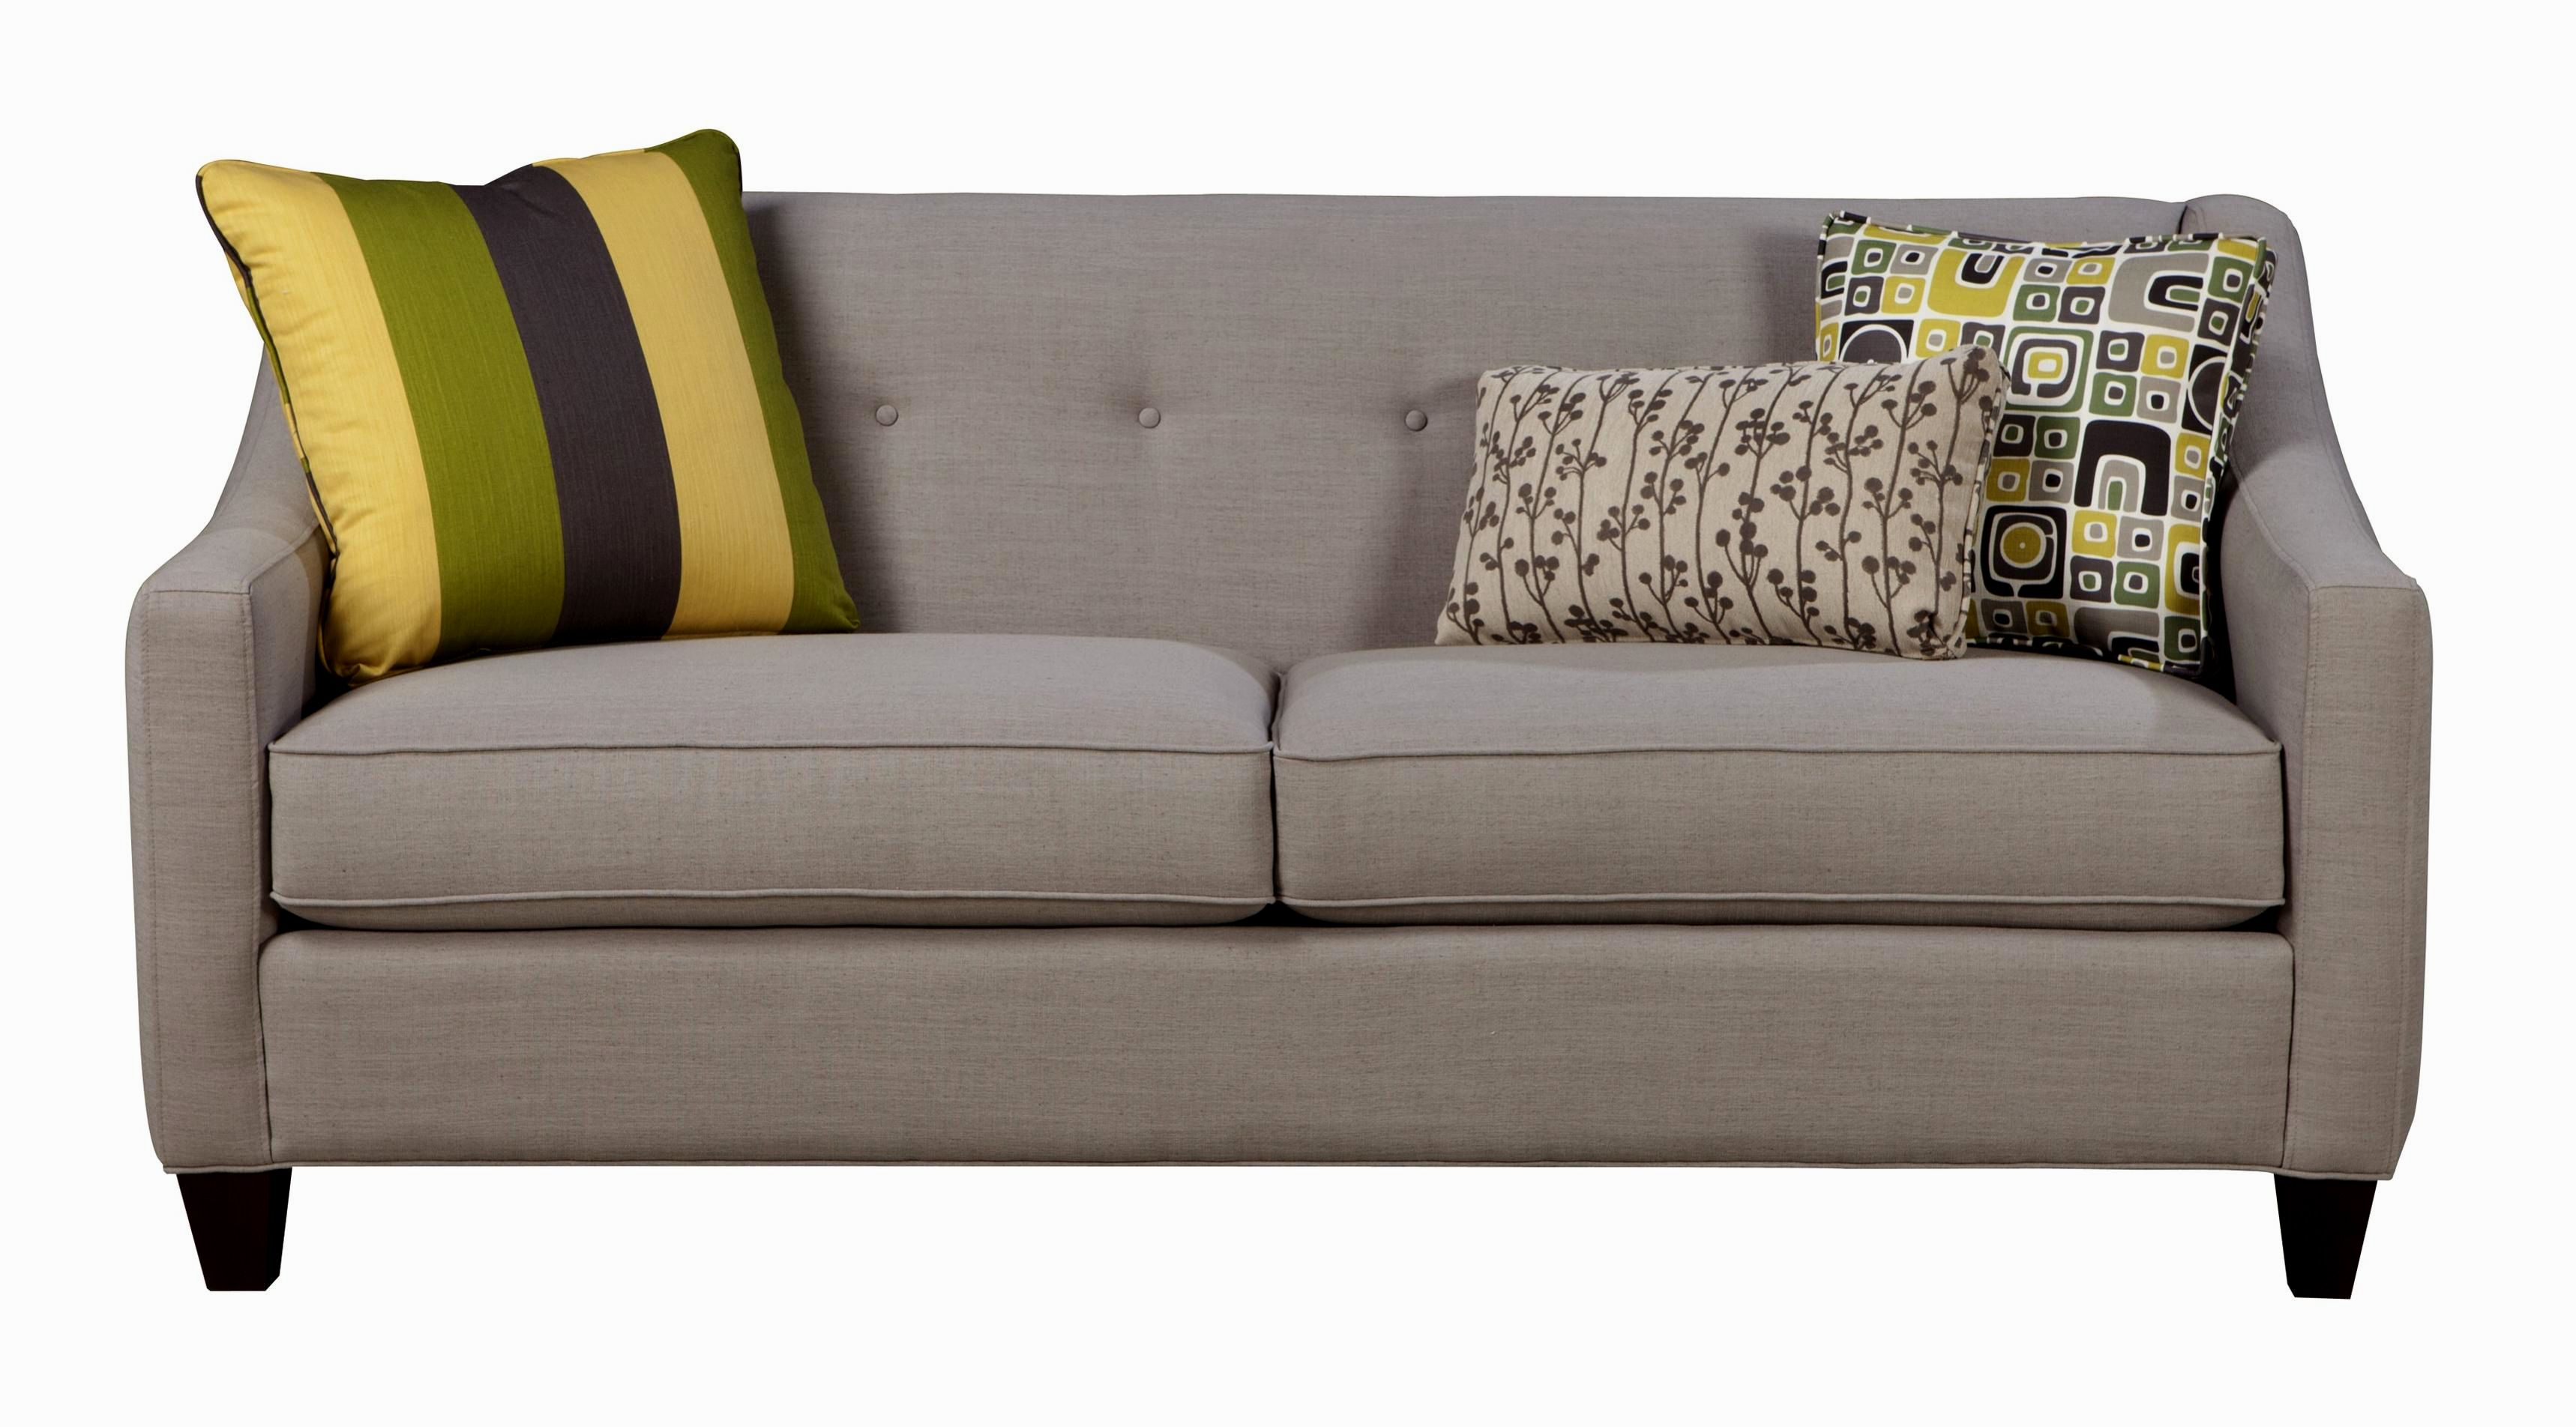 awesome memory foam sleeper sofa inspiration-Best Of Memory Foam Sleeper sofa Architecture